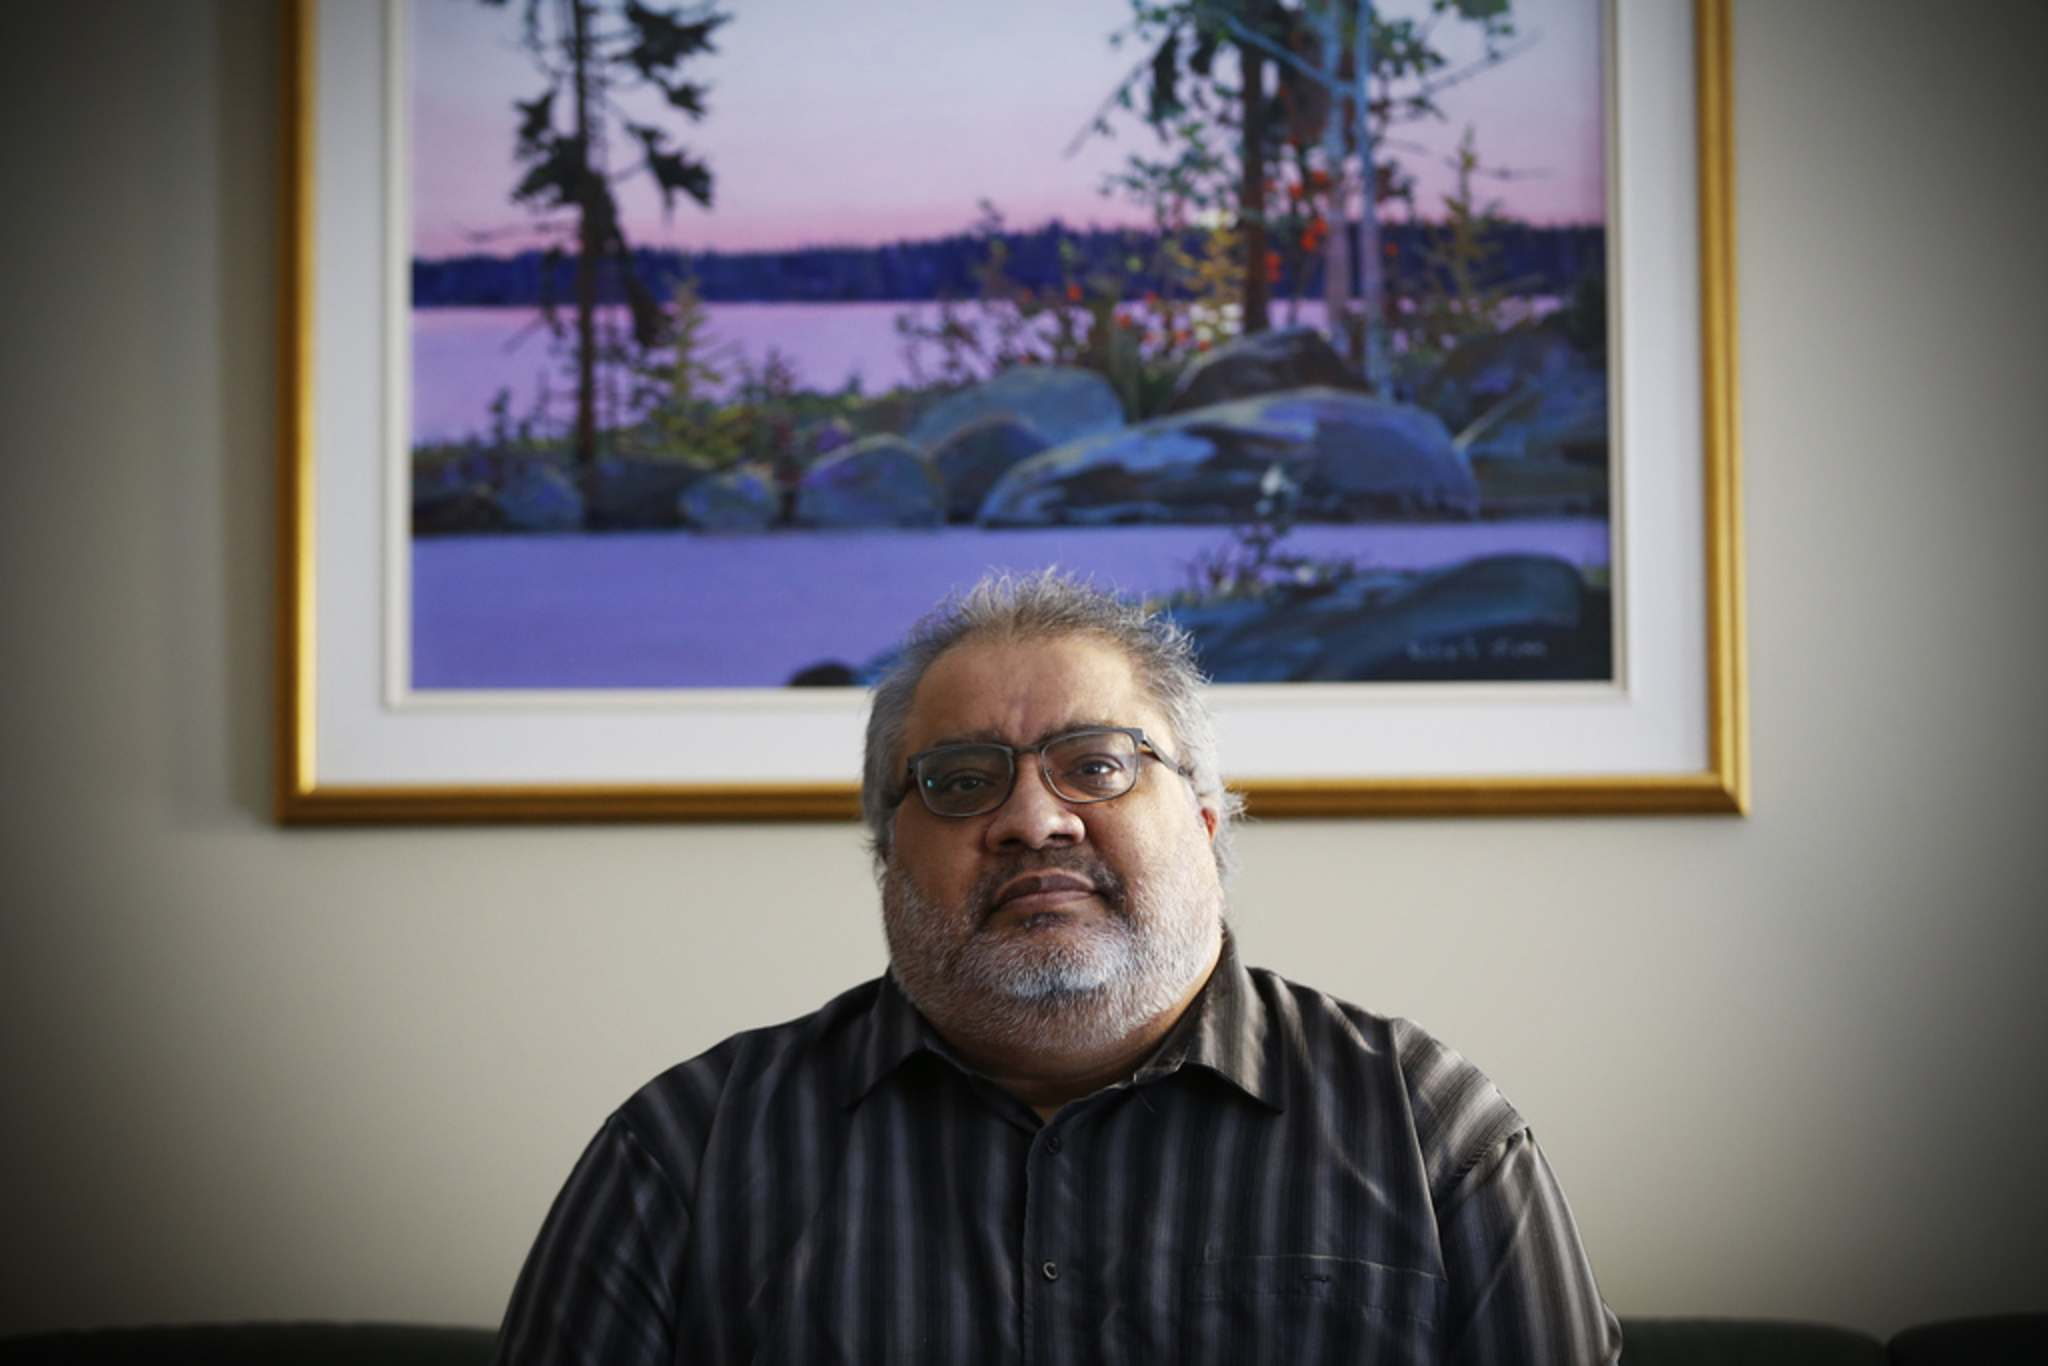 JOHN WOODS / WINNIPEG FREE PRESS</p><p>Dr. Anand Kumar warns that without 85 percent of the population immunized COVID-19 will continue to circulate.</p>